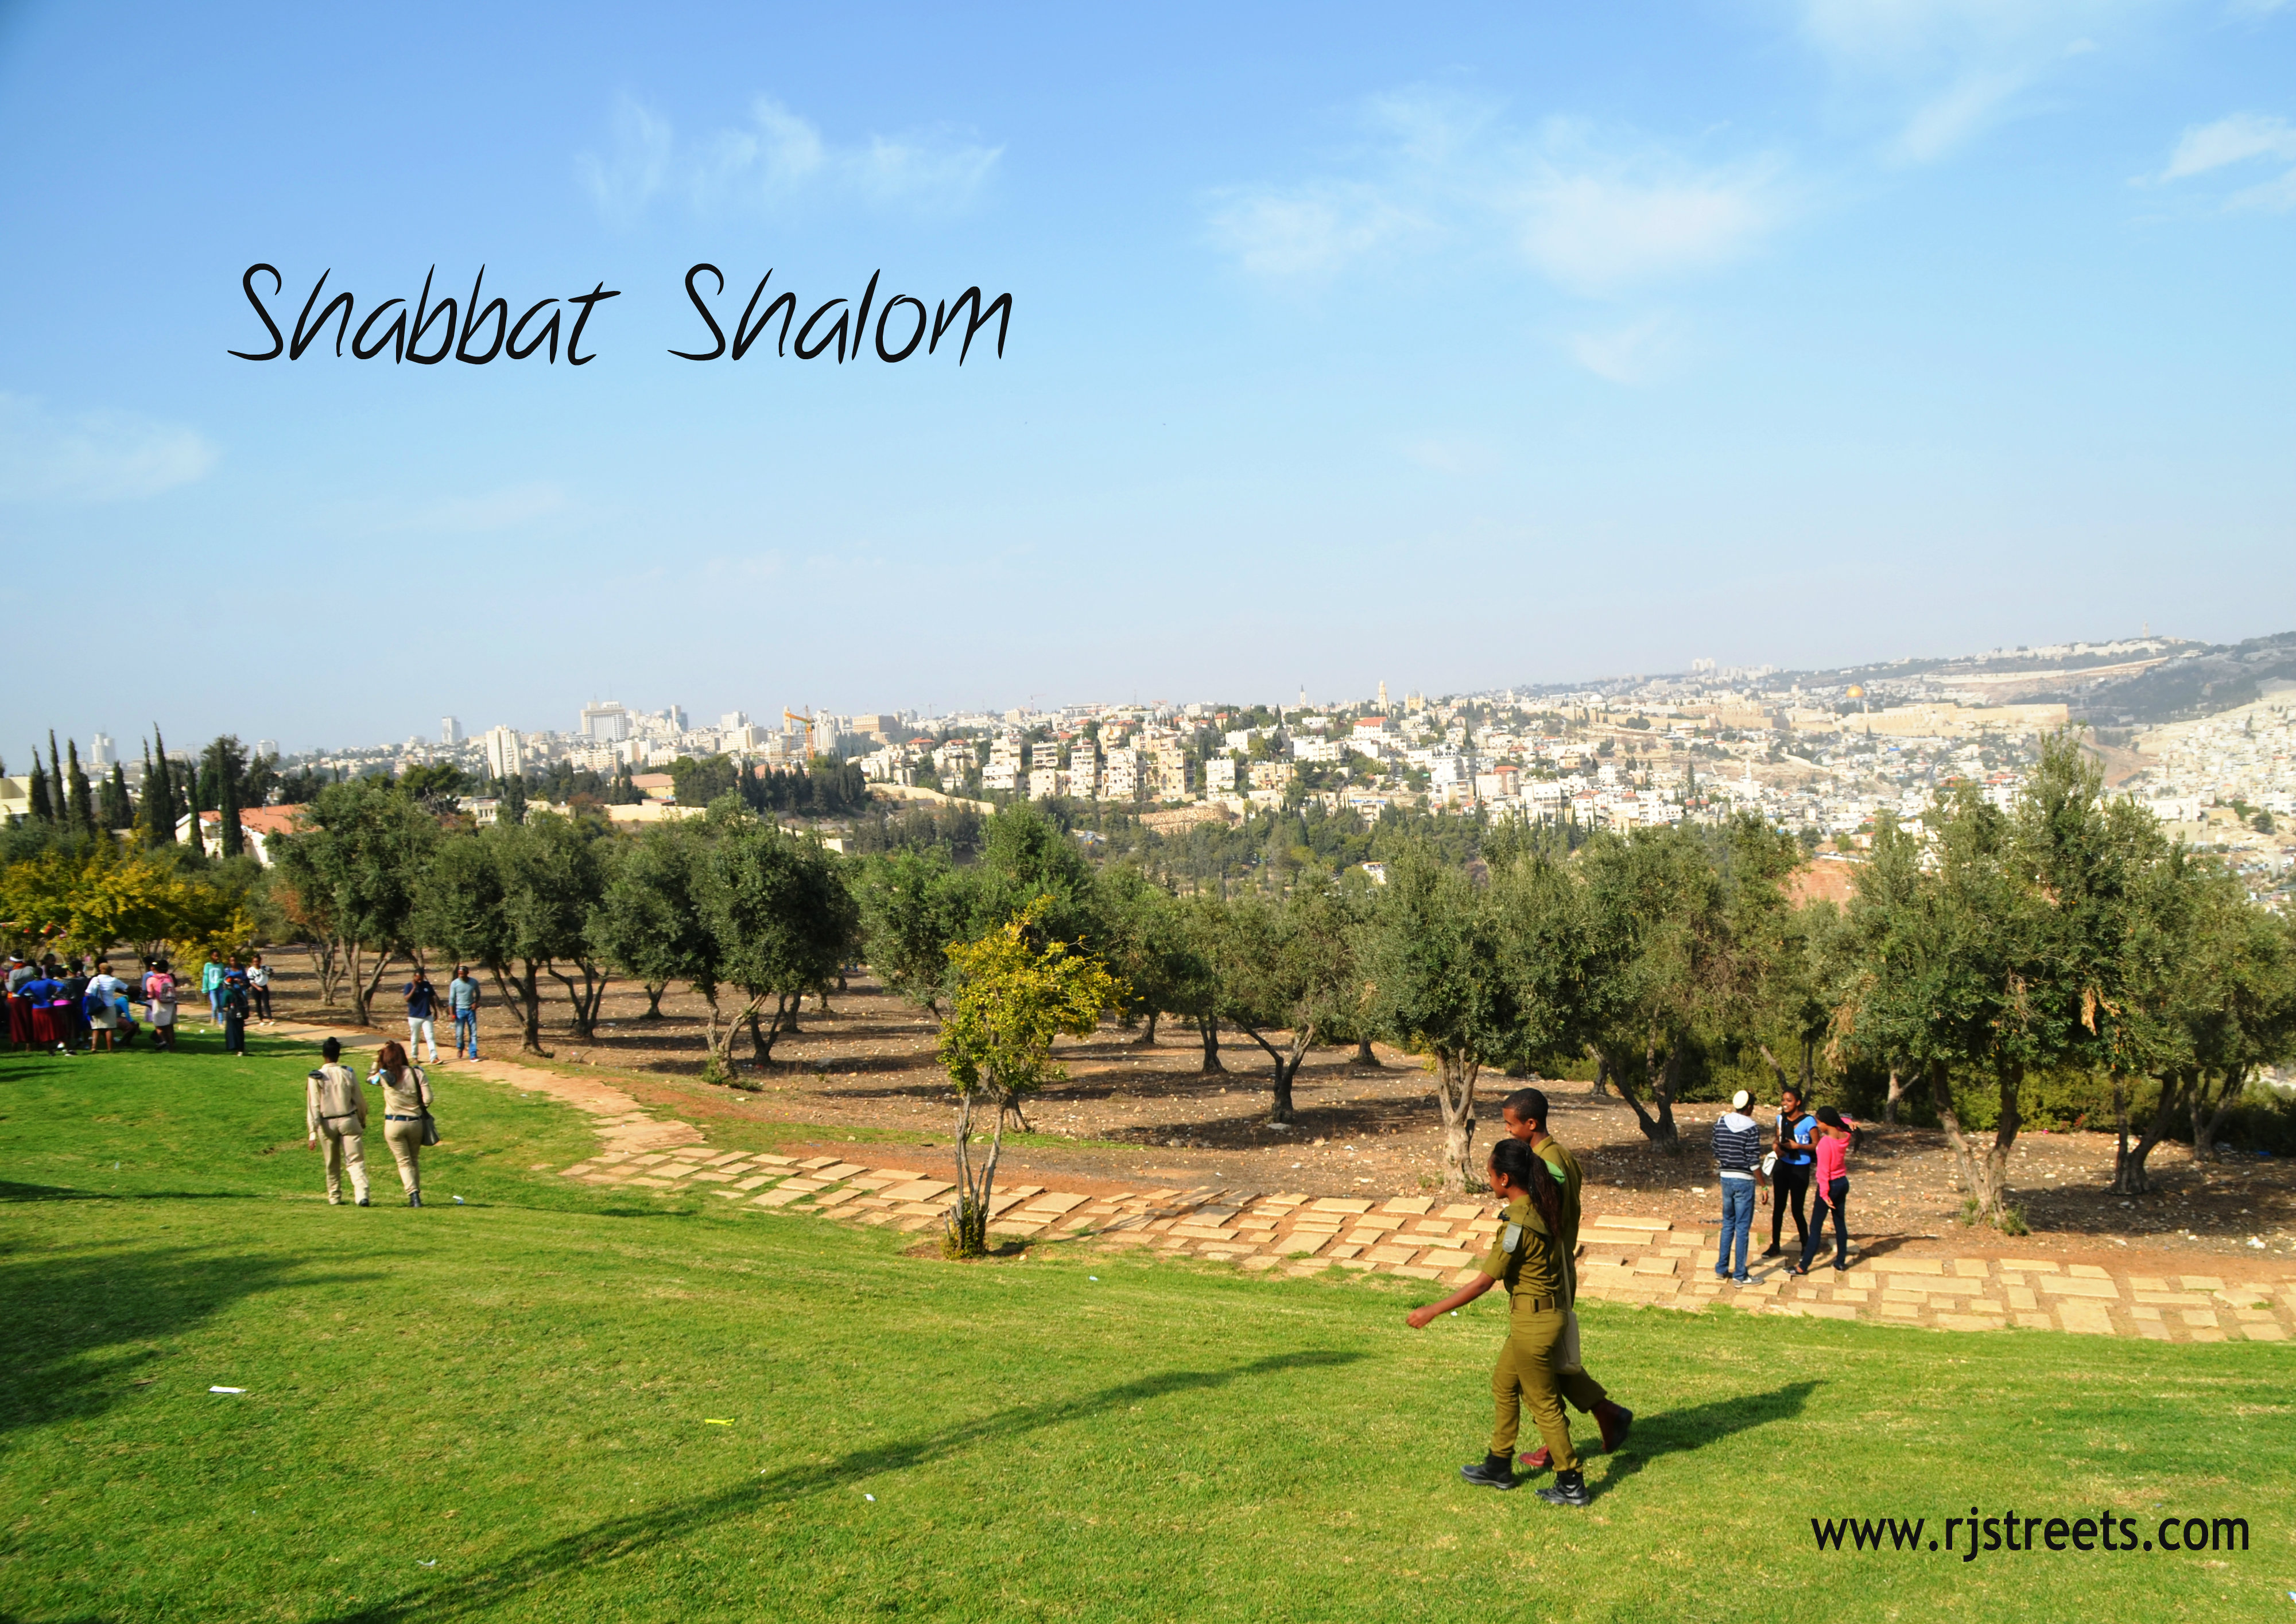 Jerusalem view photo, scene from Tayelet, picture Sigd